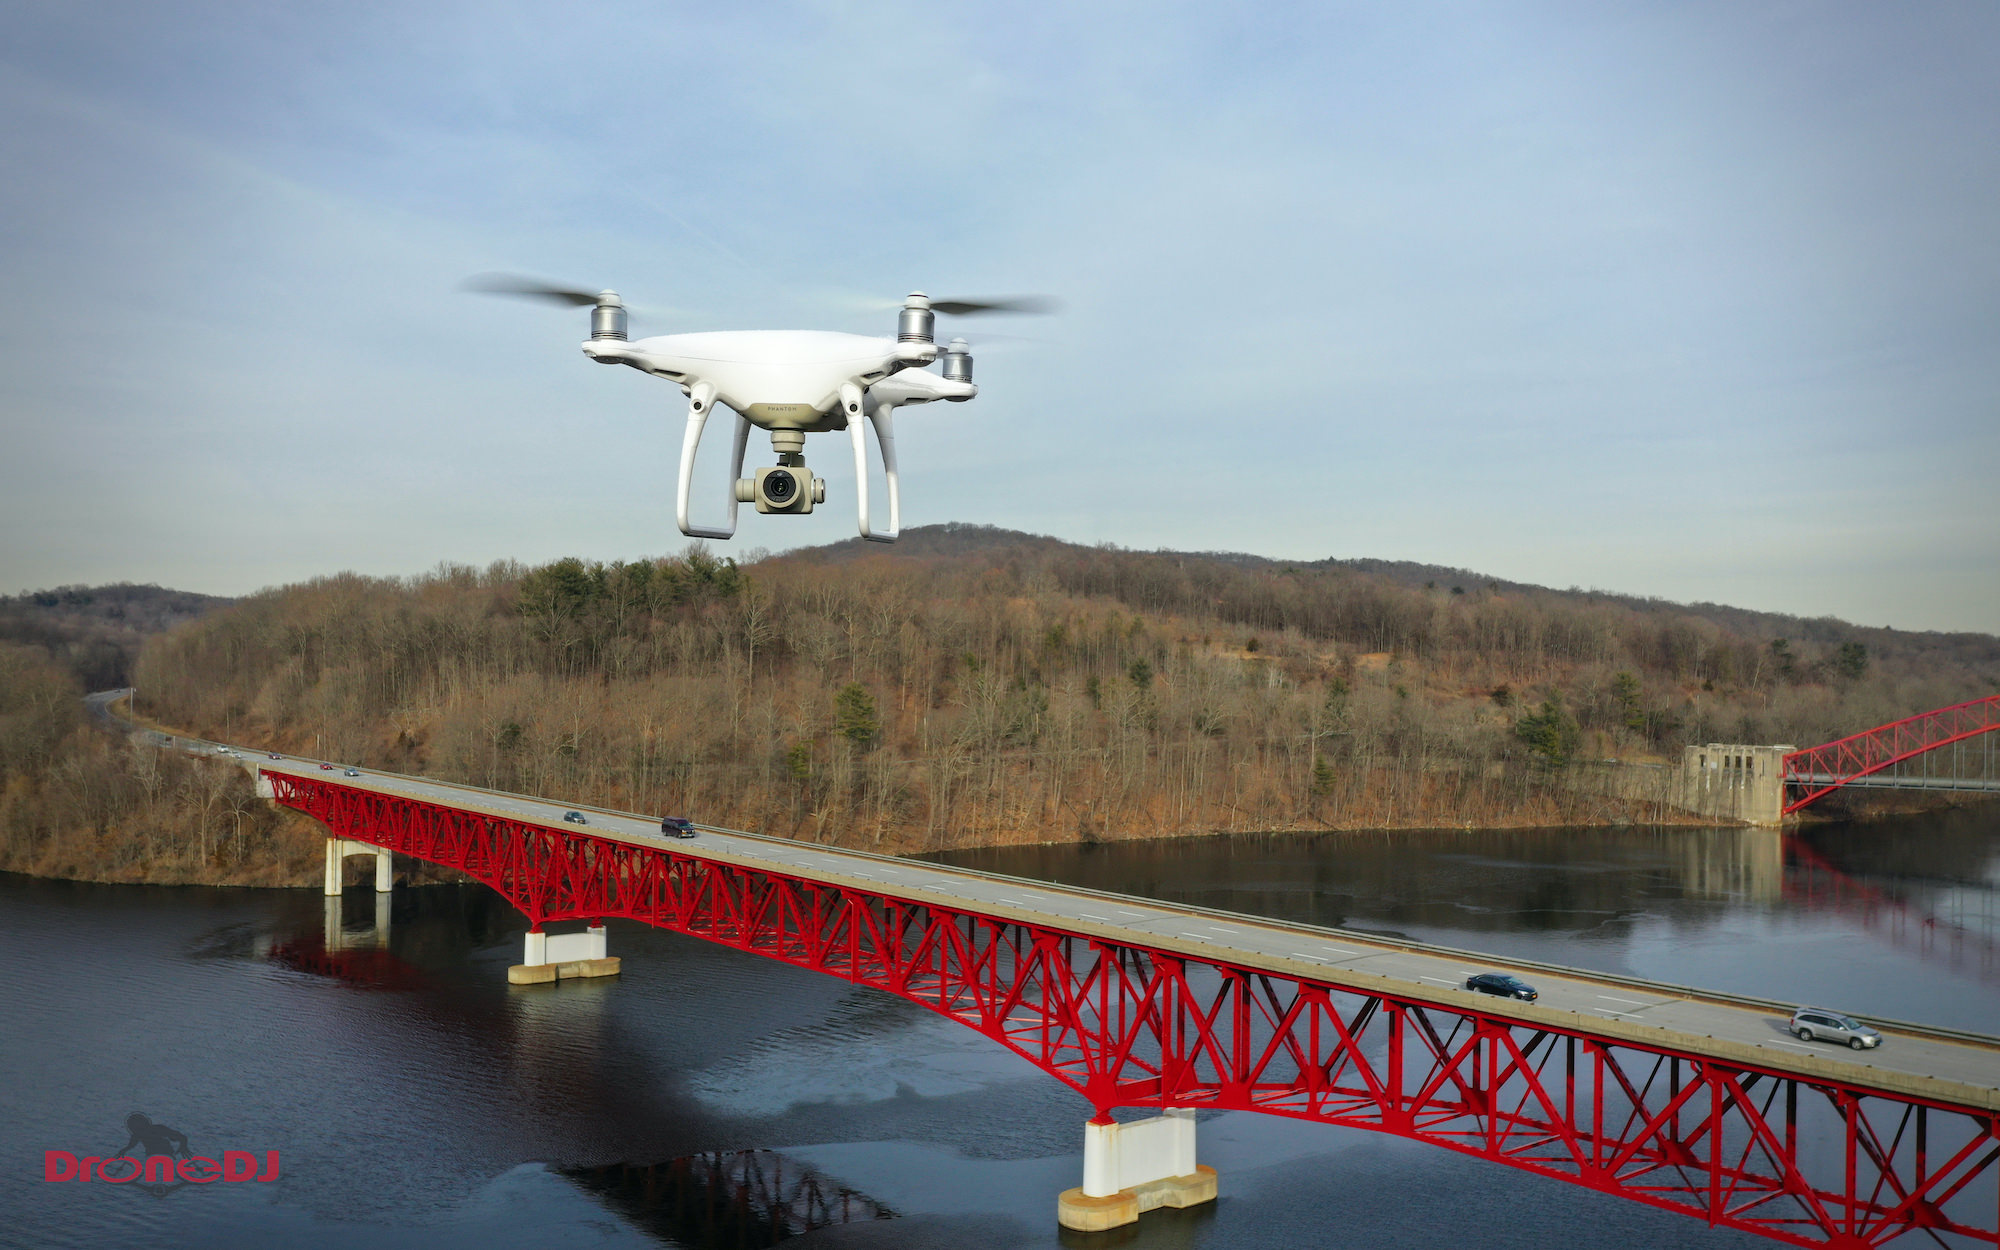 The iconic quadcopter from DJI, that needs no re-re-introduction, has remained a favorite of many drone pilots even though the competition is heating